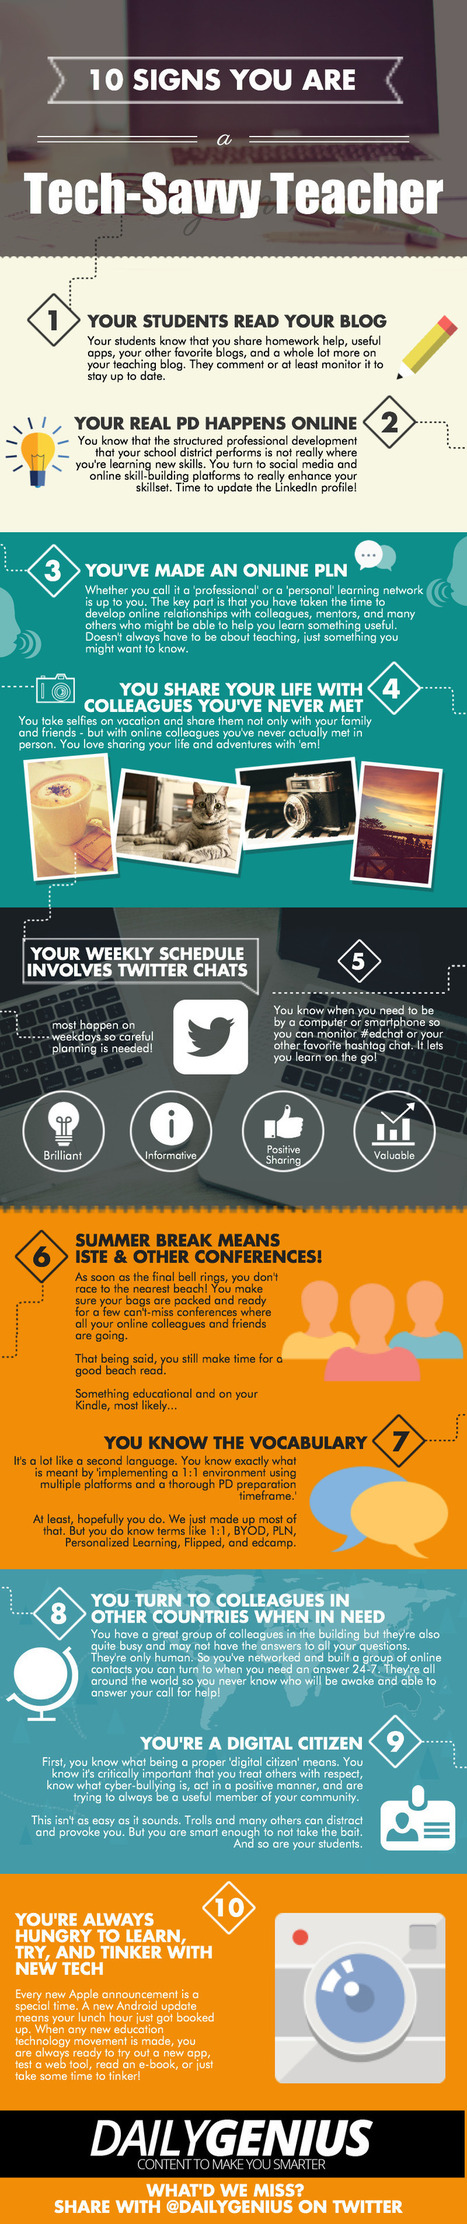 10 Signs You Are a Tech-Savvy Teacher Infographic | e-Learning Infographics | Leading EDge | Scoop.it